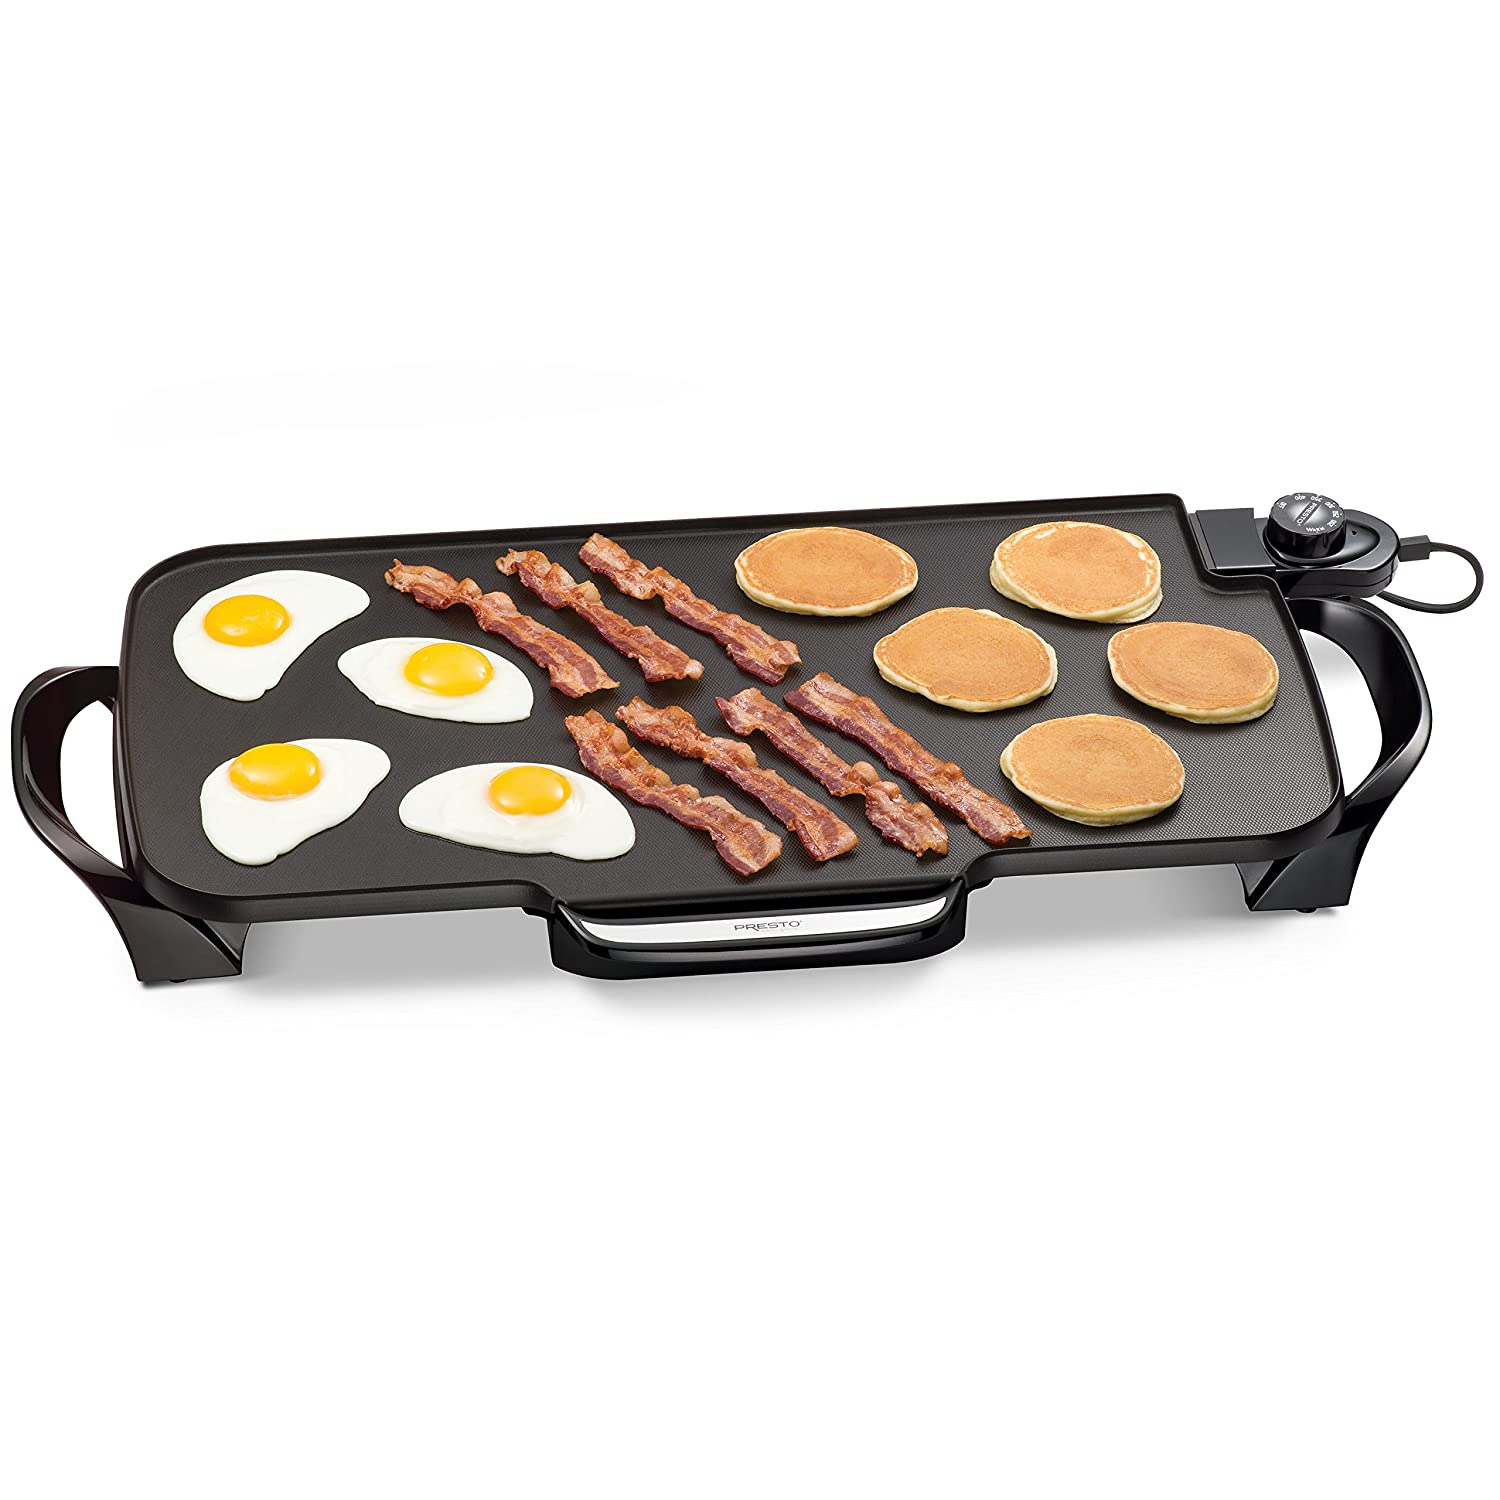 Best Electric Griddle Reviews 2019: Top 5+ Recommended 2 #cookymom